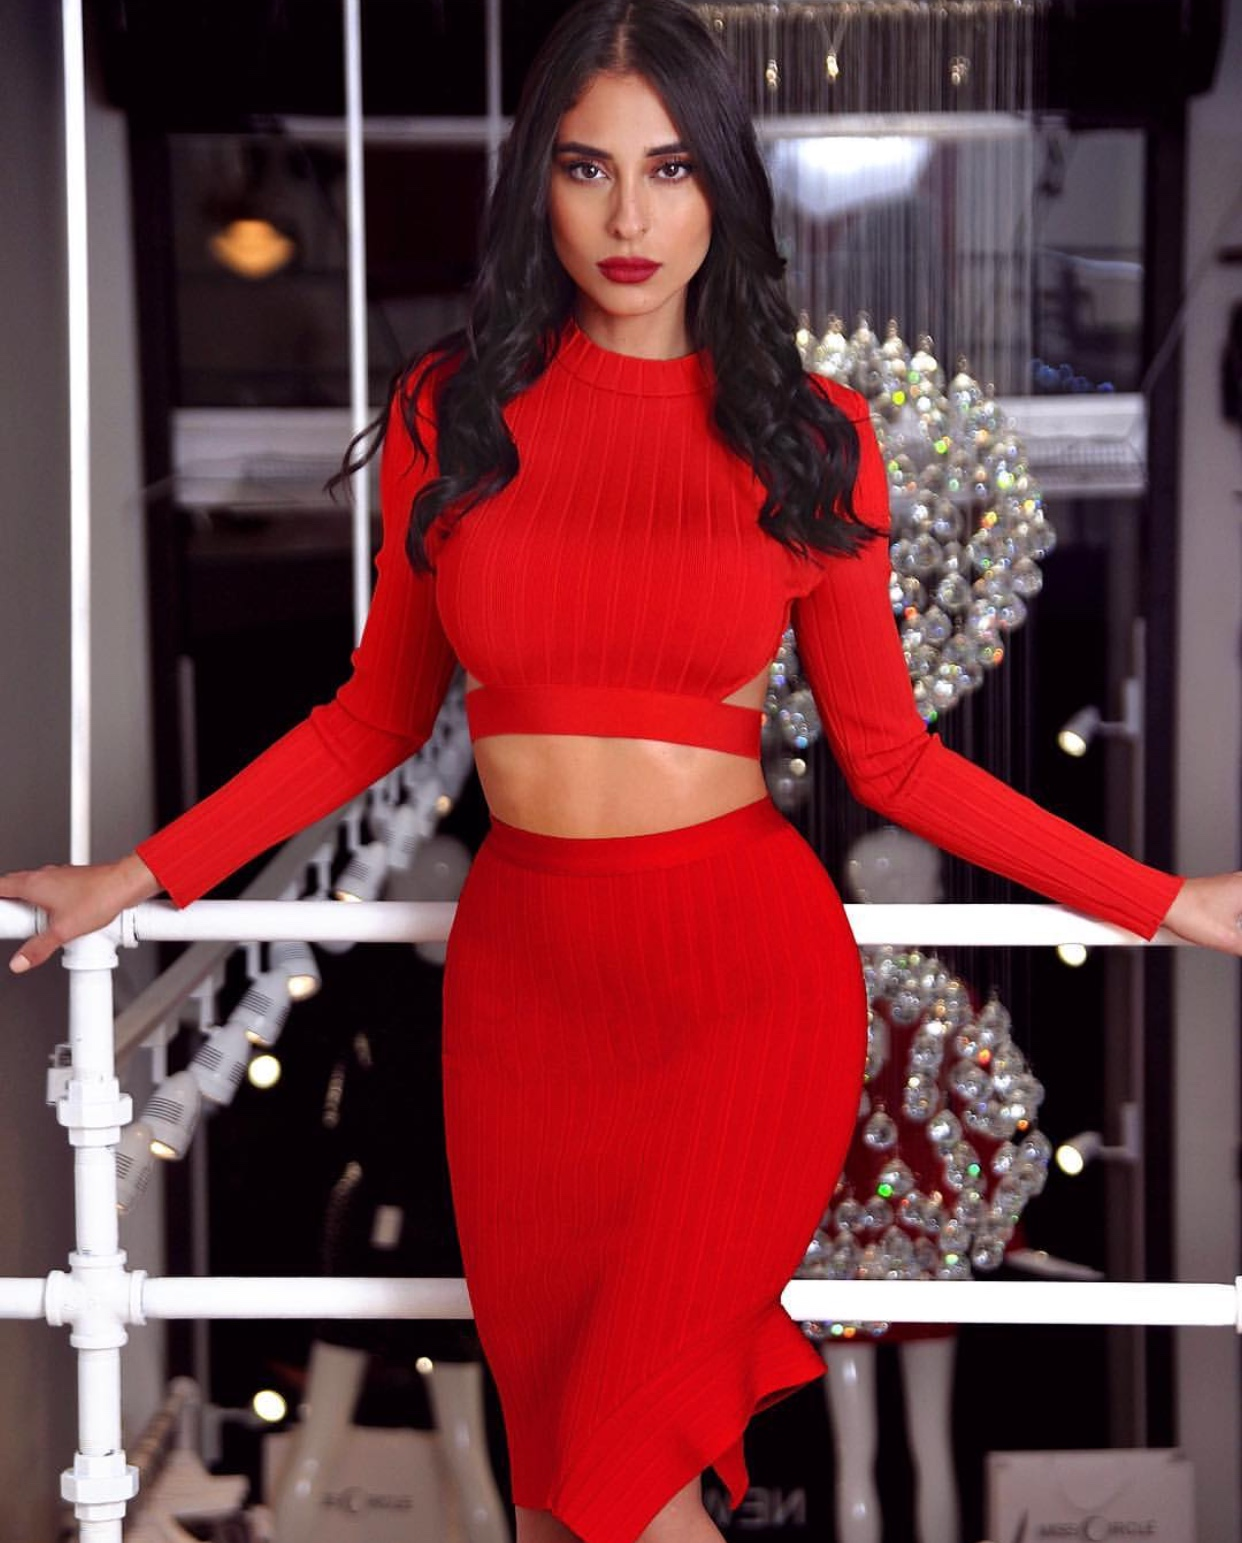 c780909d8 new fashion high quality red 2 piece set bandage with long sleeve party  dress celebrity women wholesales china online